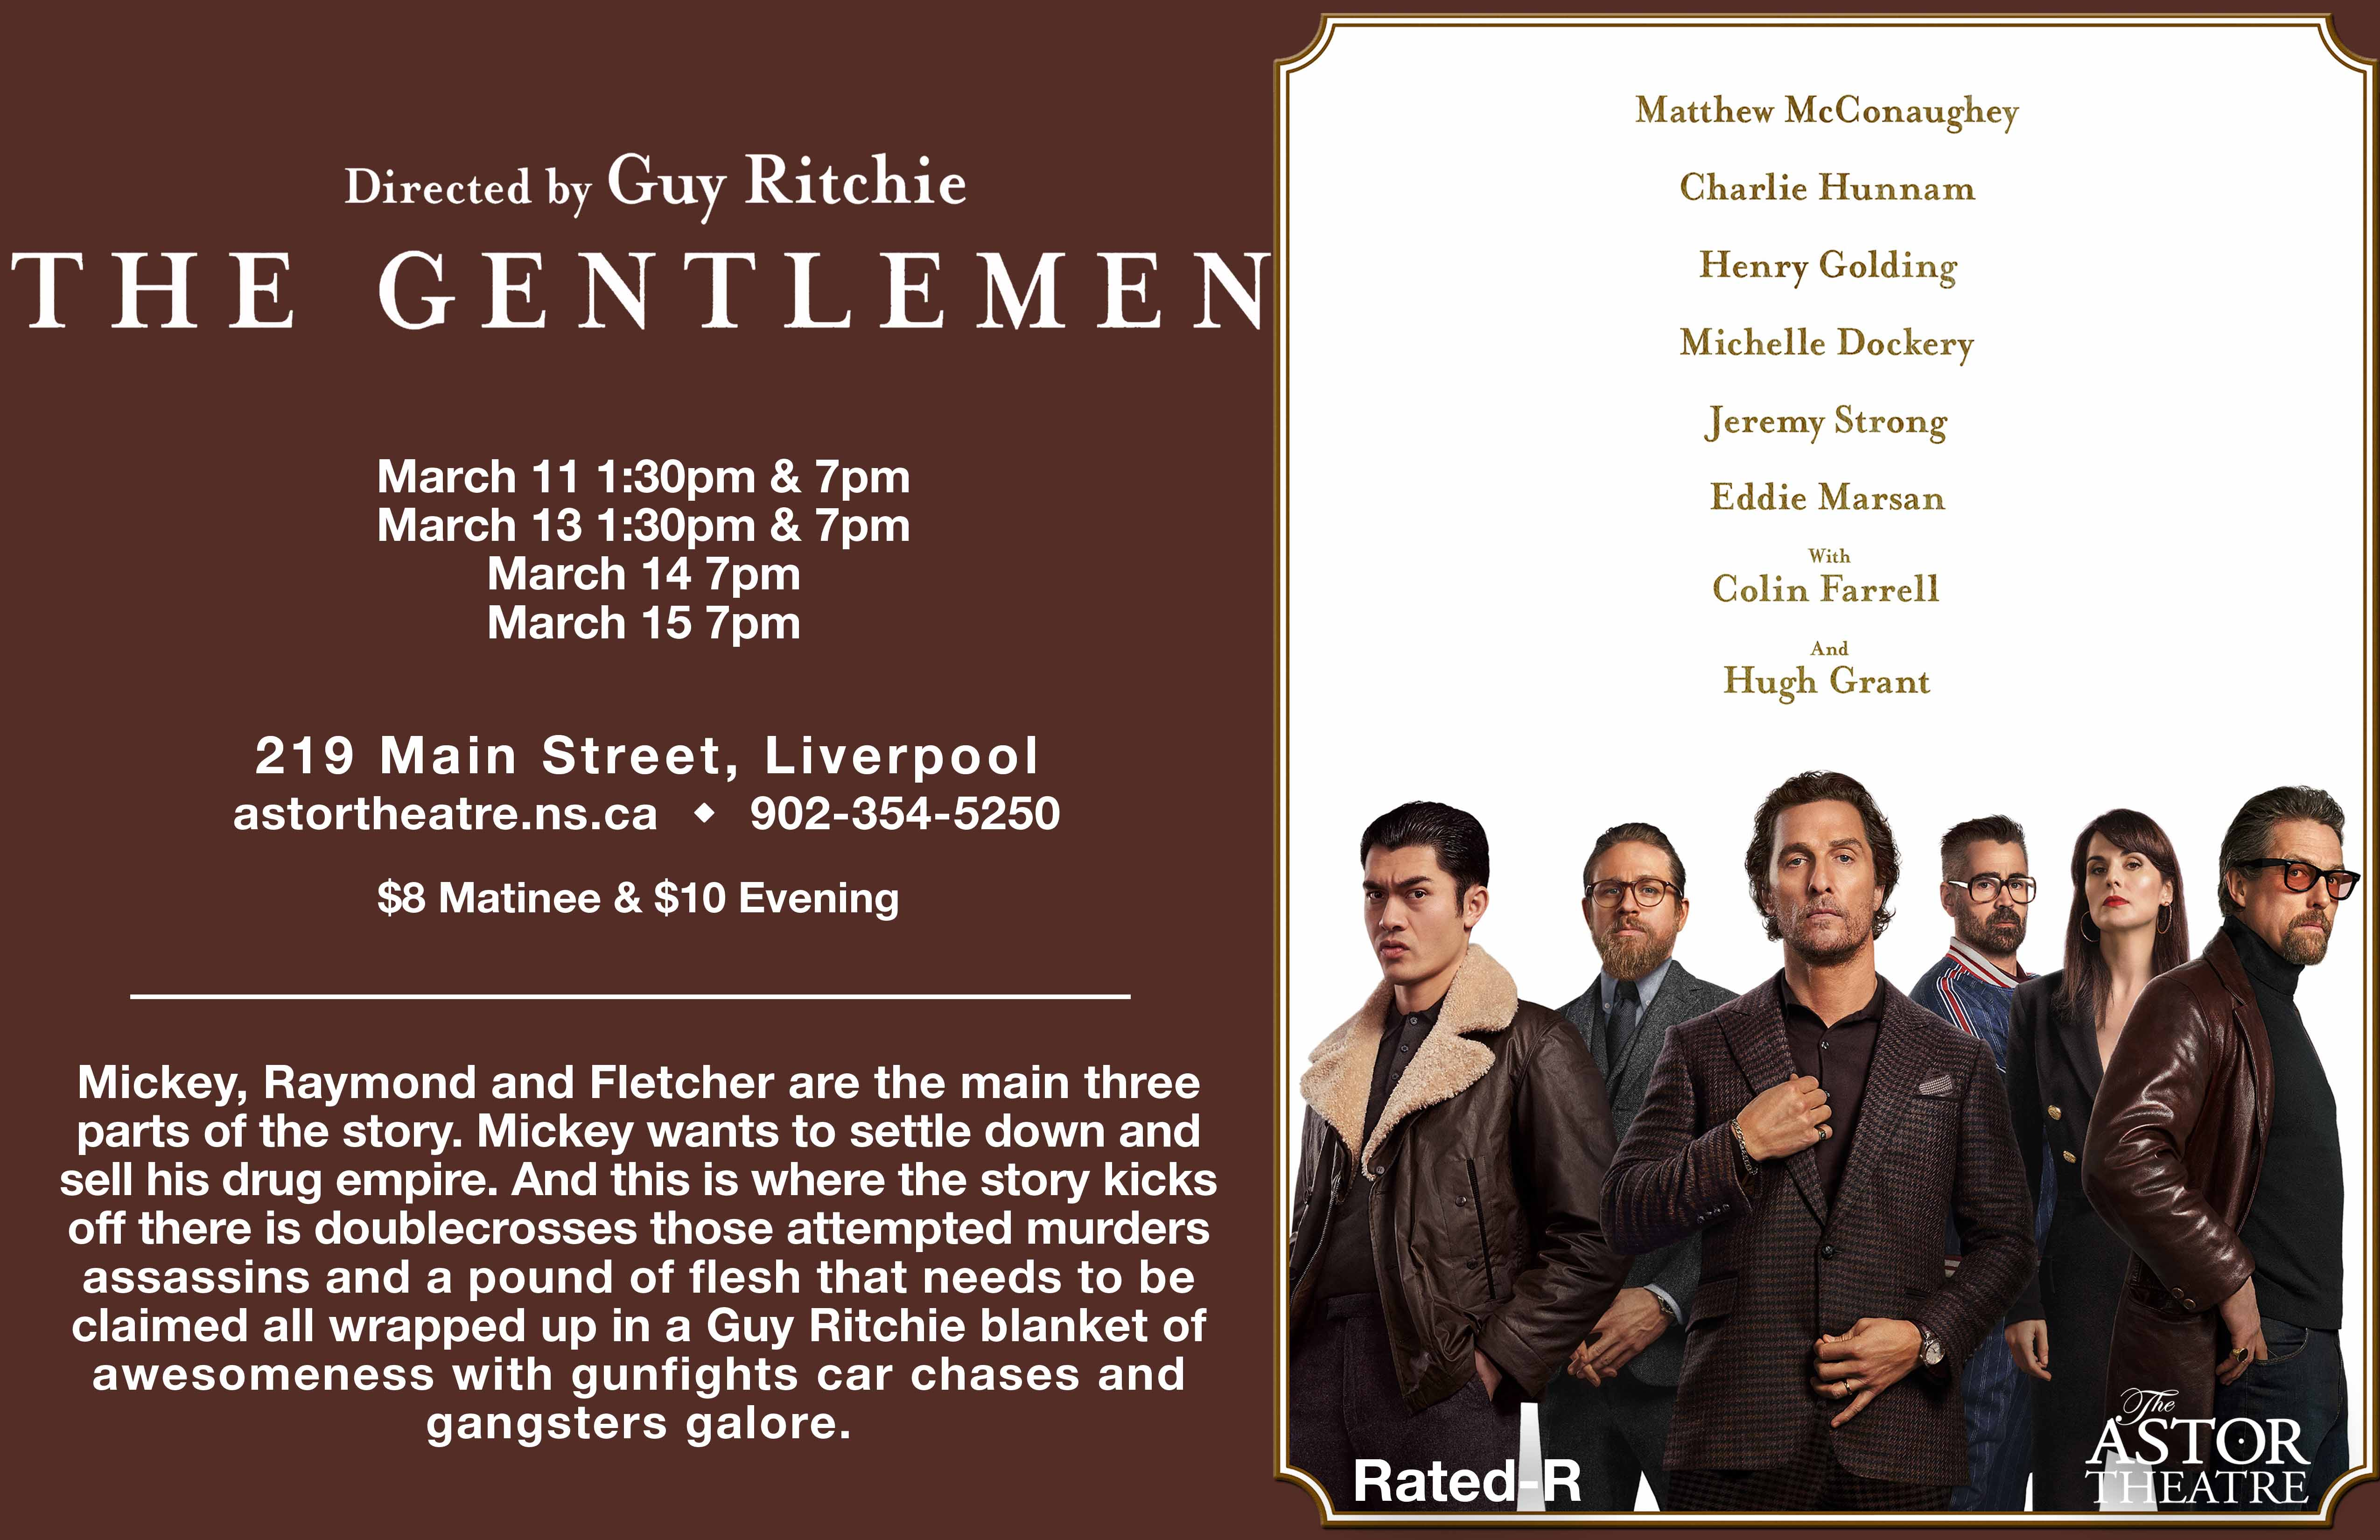 The Gentlemen 1:30pm & 7pm @ Astor Theatre